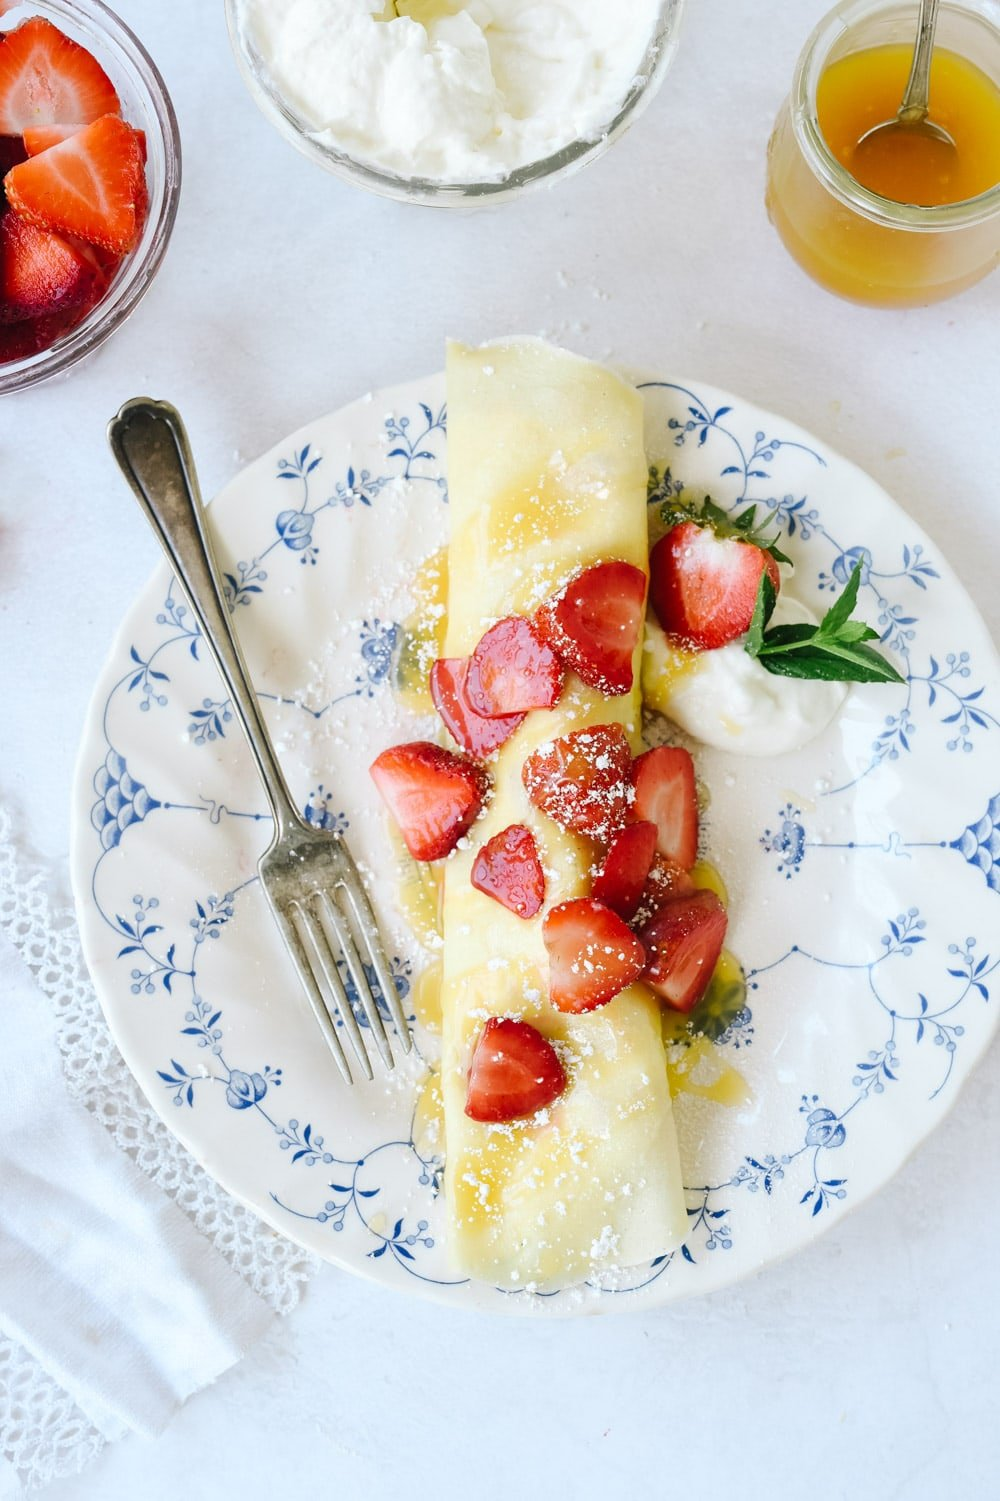 rolled crepe with berries